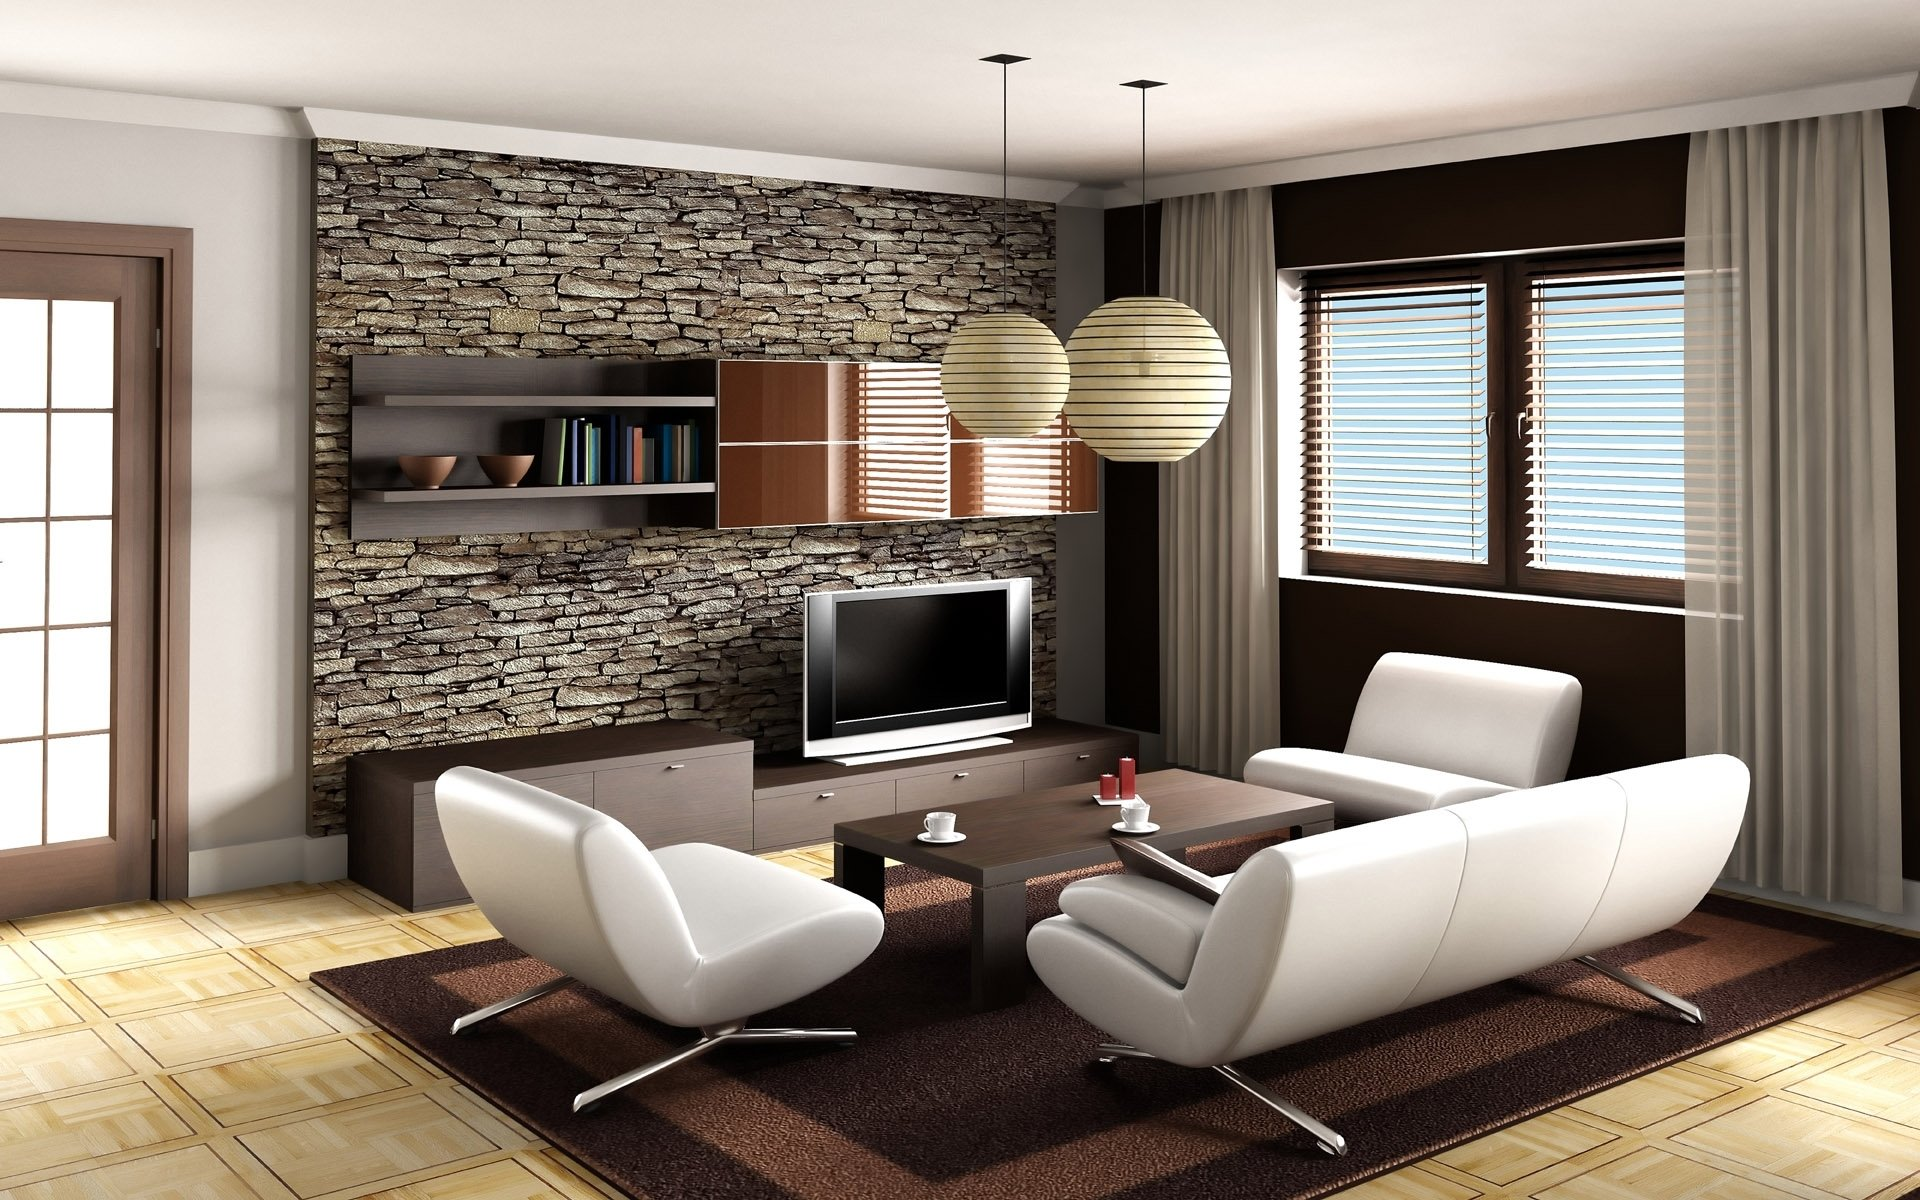 10 Amazing Interior Decorating Ideas For Living Rooms apartment living room design ideas on a budget tags new living 1 2021